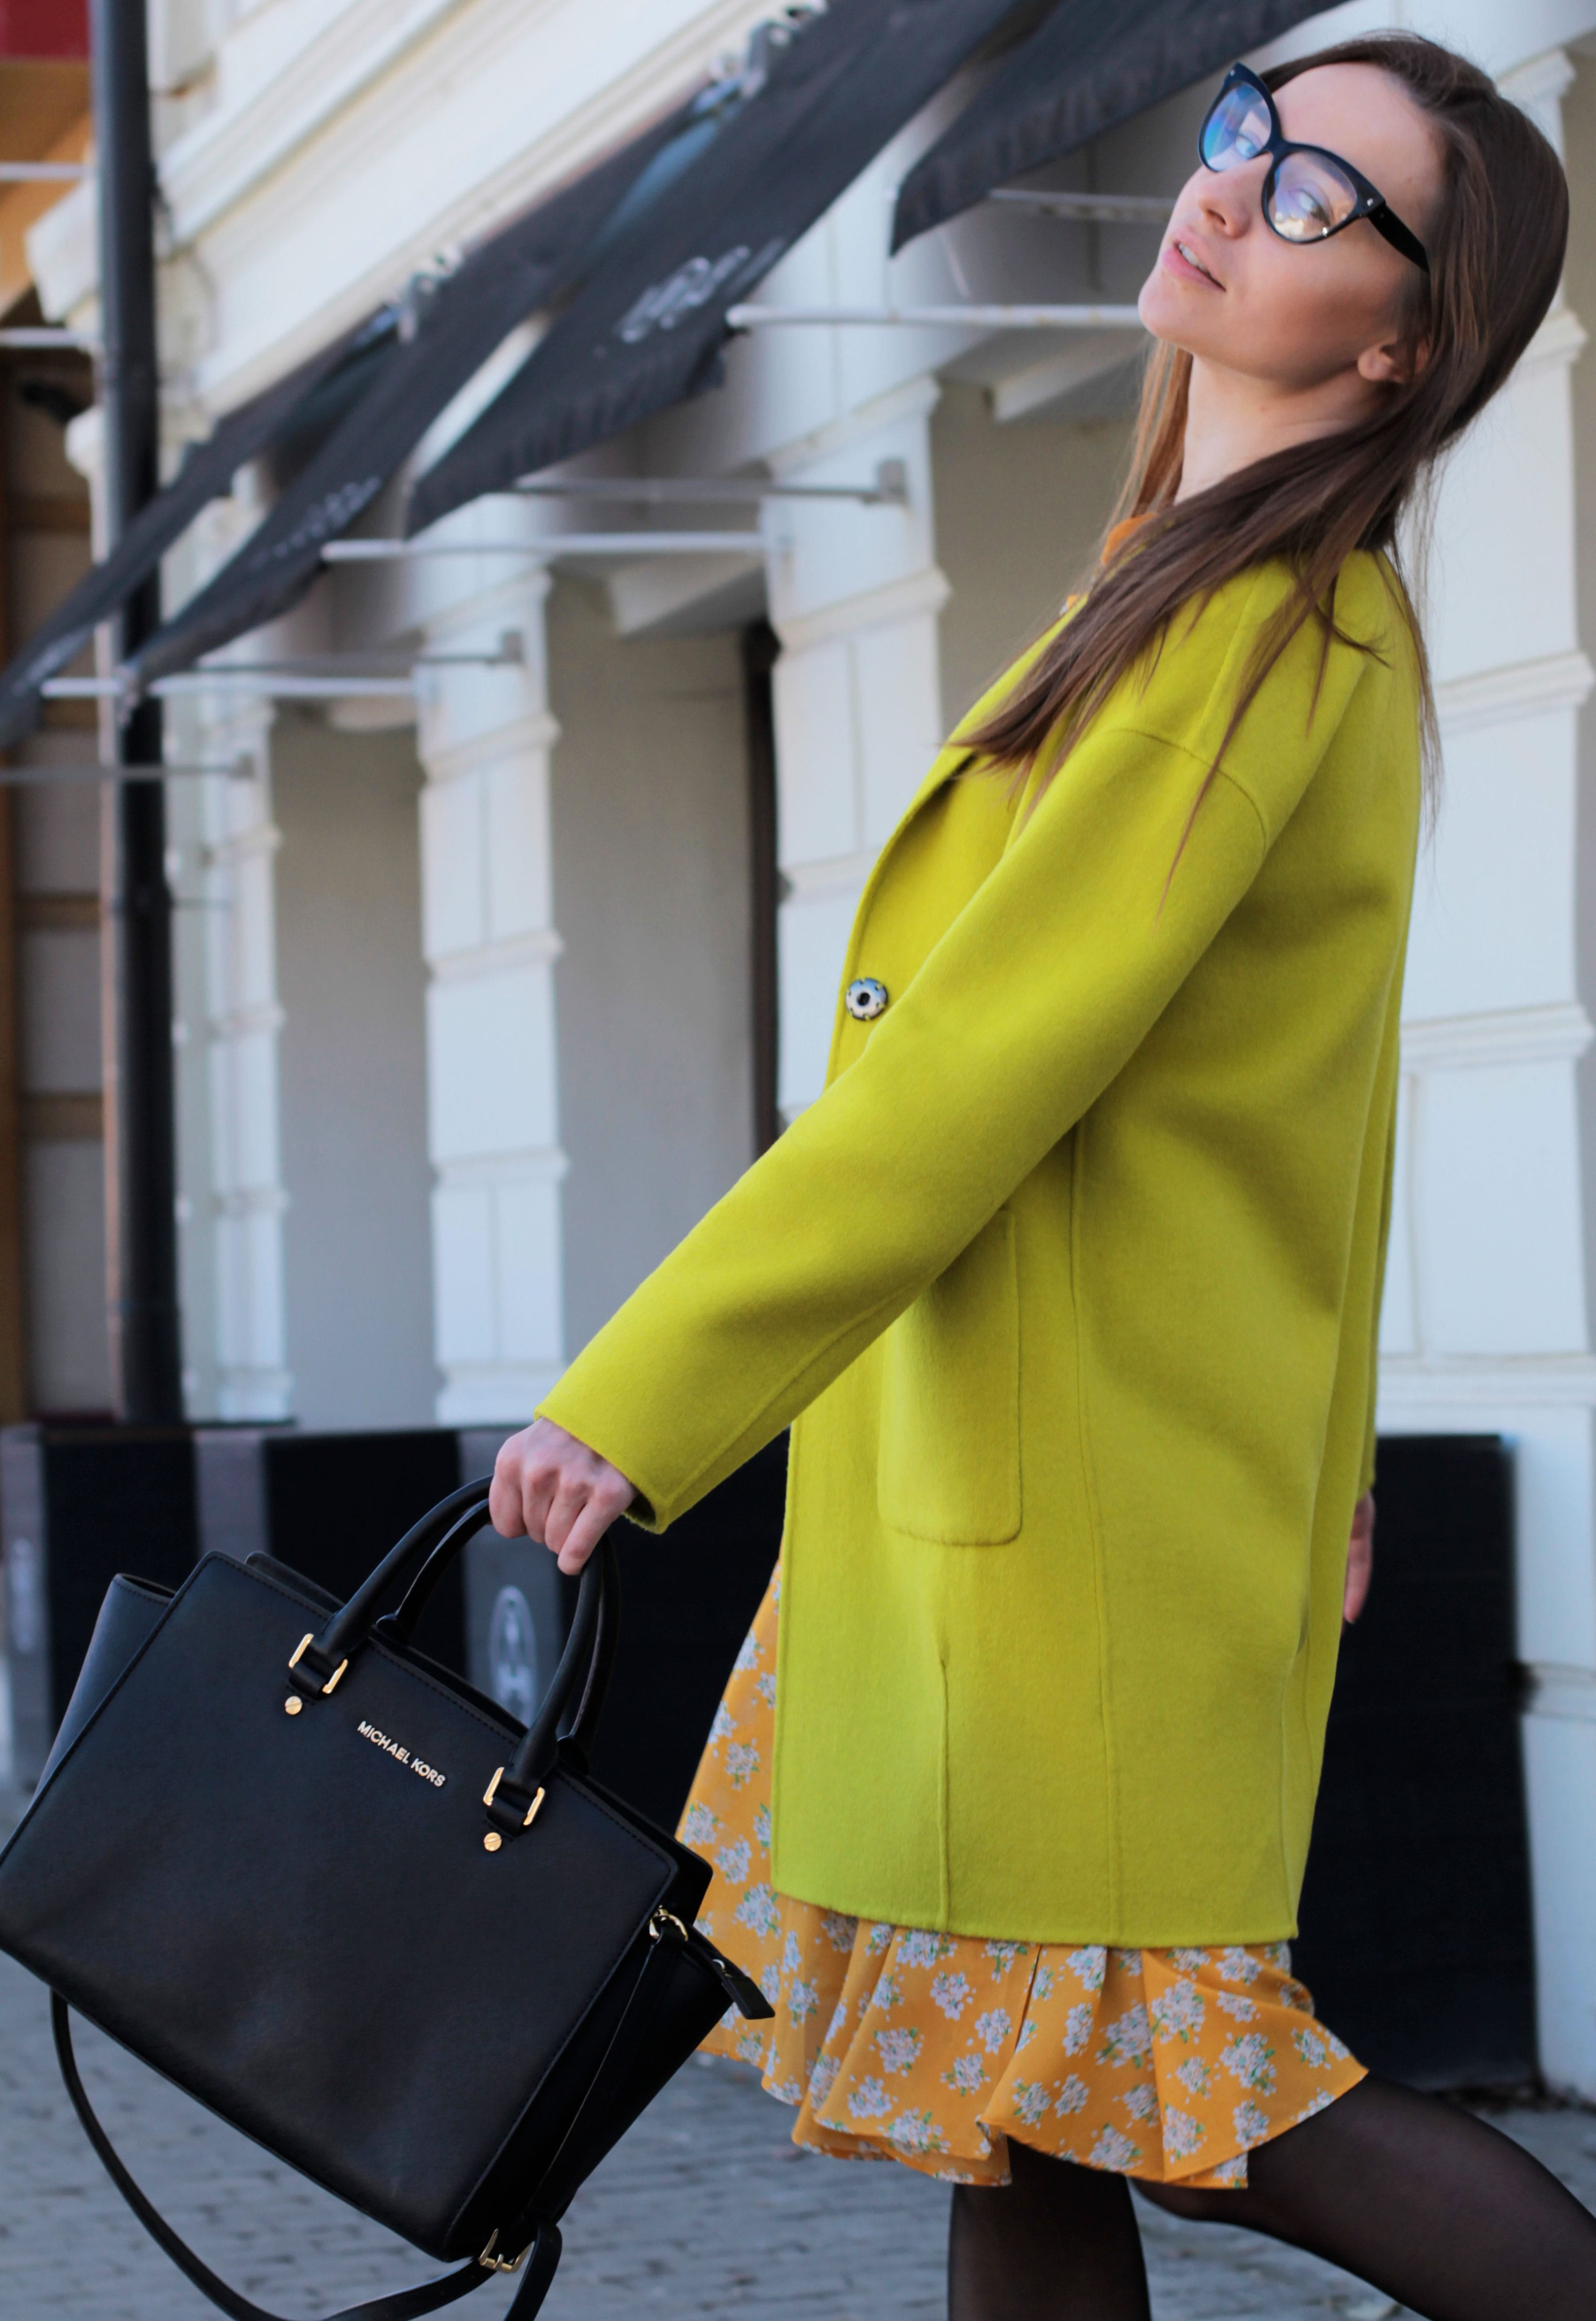 cultsome yellow dress lime coat tuzzi kateillustrate